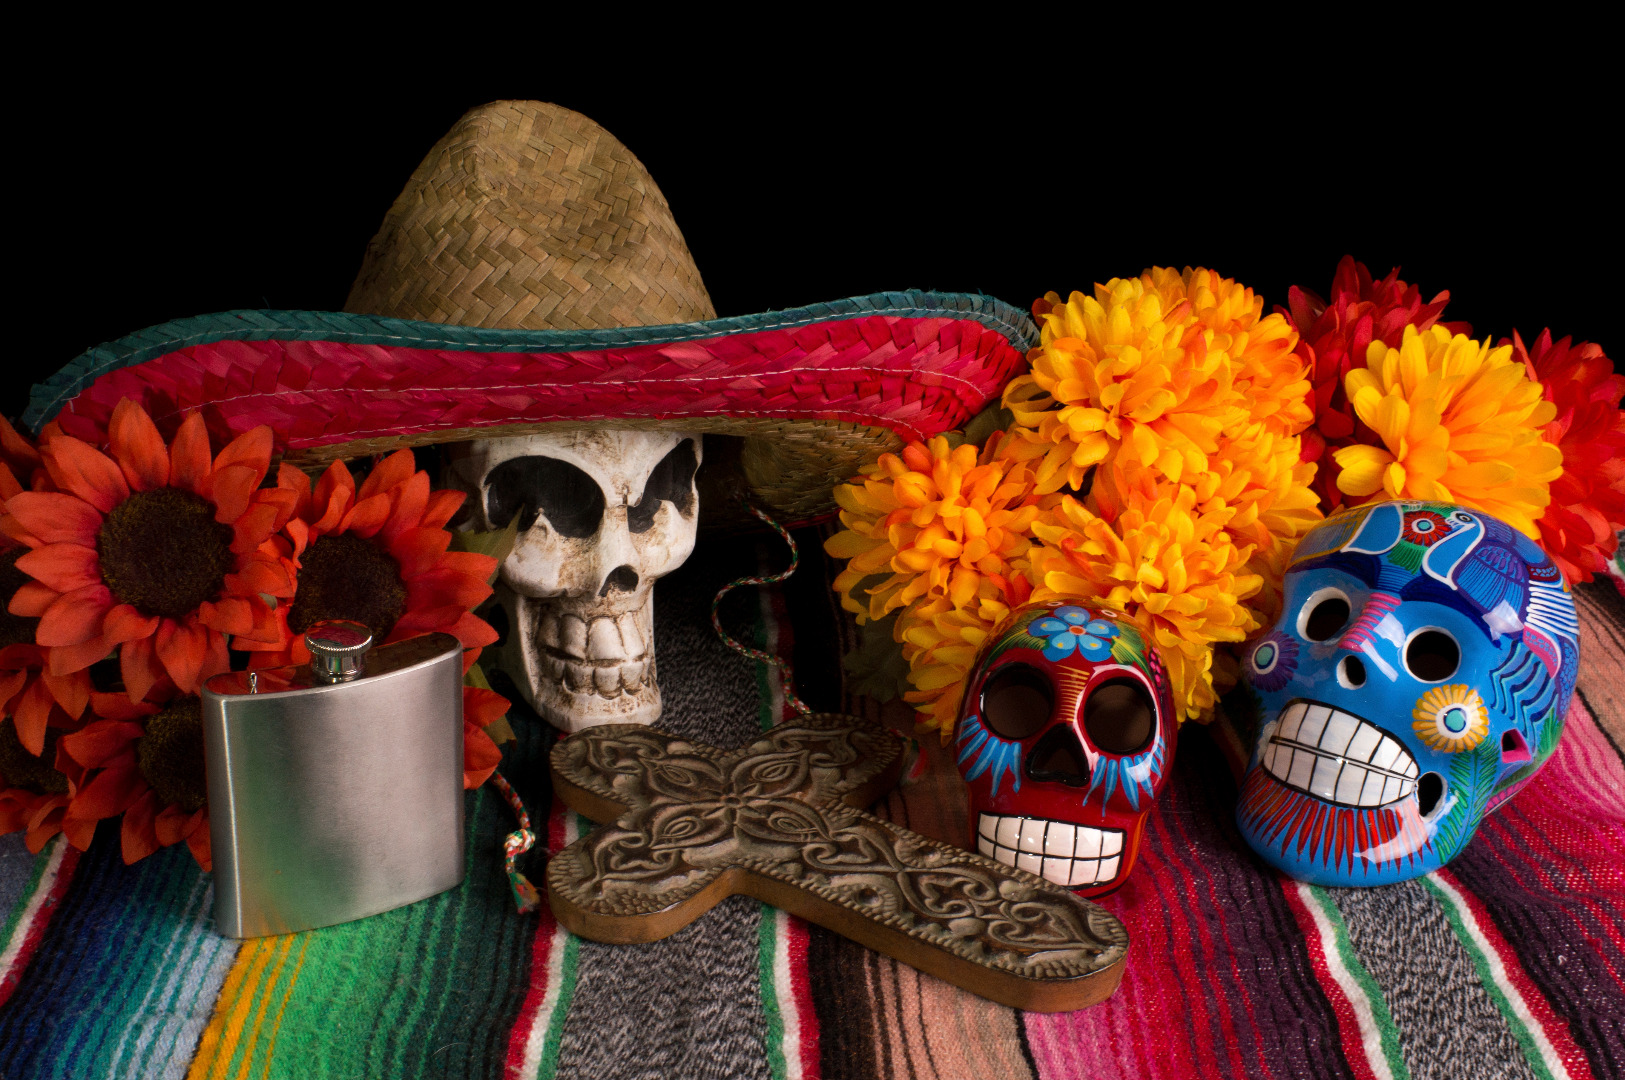 A Day of the Dead Altar. One skeleton skull wearing a sombrero. Two painted skeleton masks, surrounded by marigolds (Flower of the Dead). Flowers, a silver flask, and a carved wooden religious cross. Day of the Dead in Mexico / Skyscanner Canada